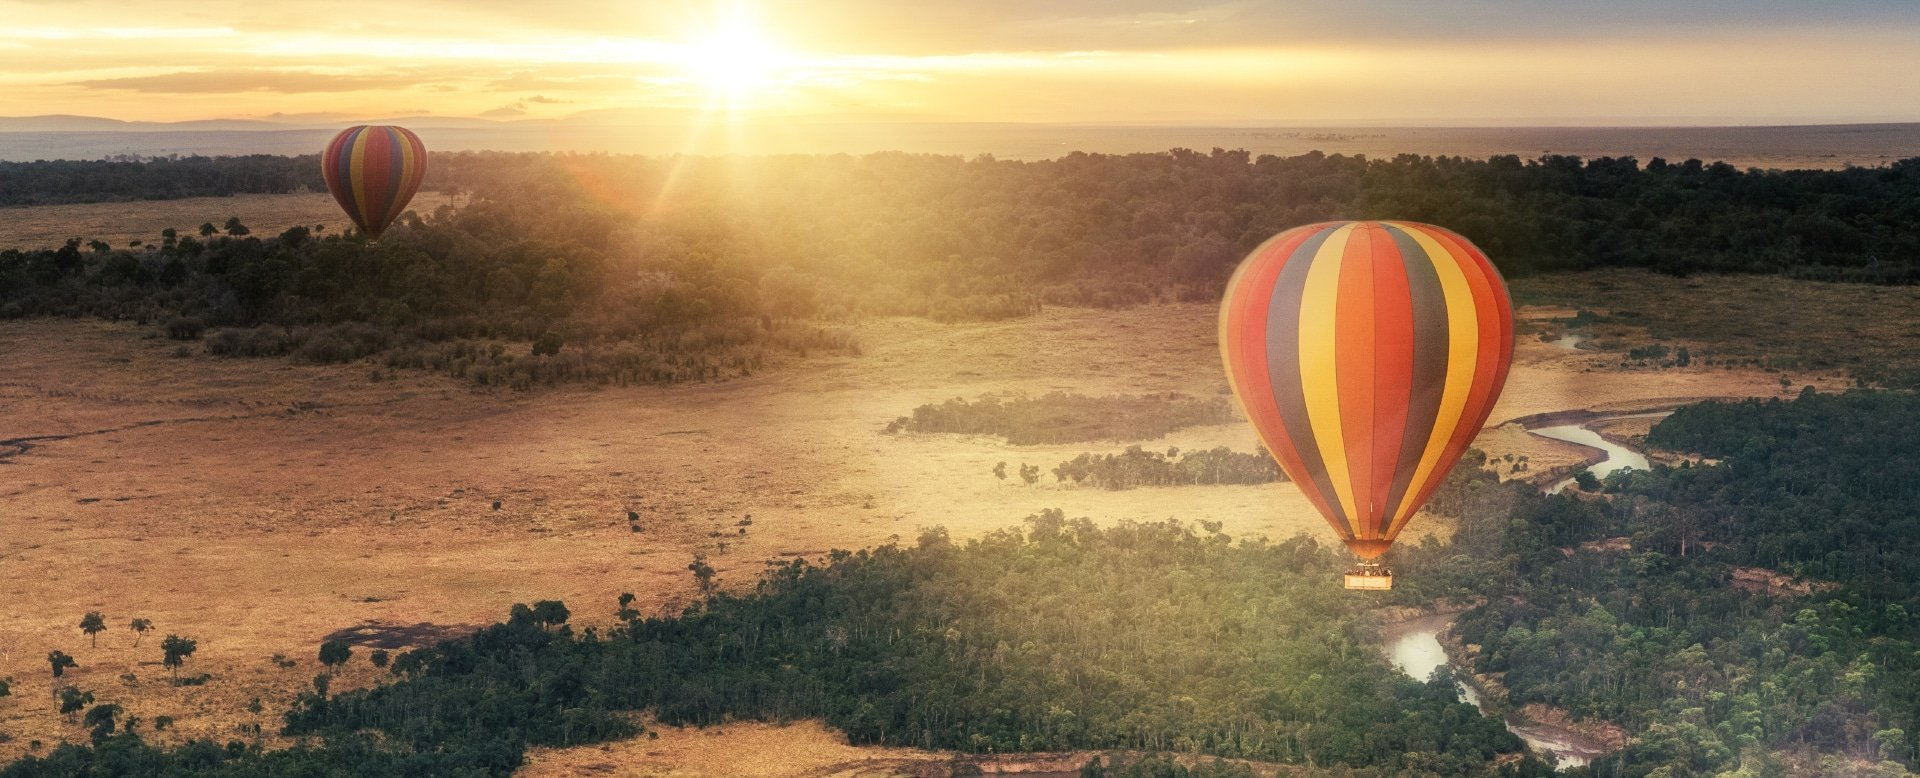 An exciting balloon flight over the Masai Mara